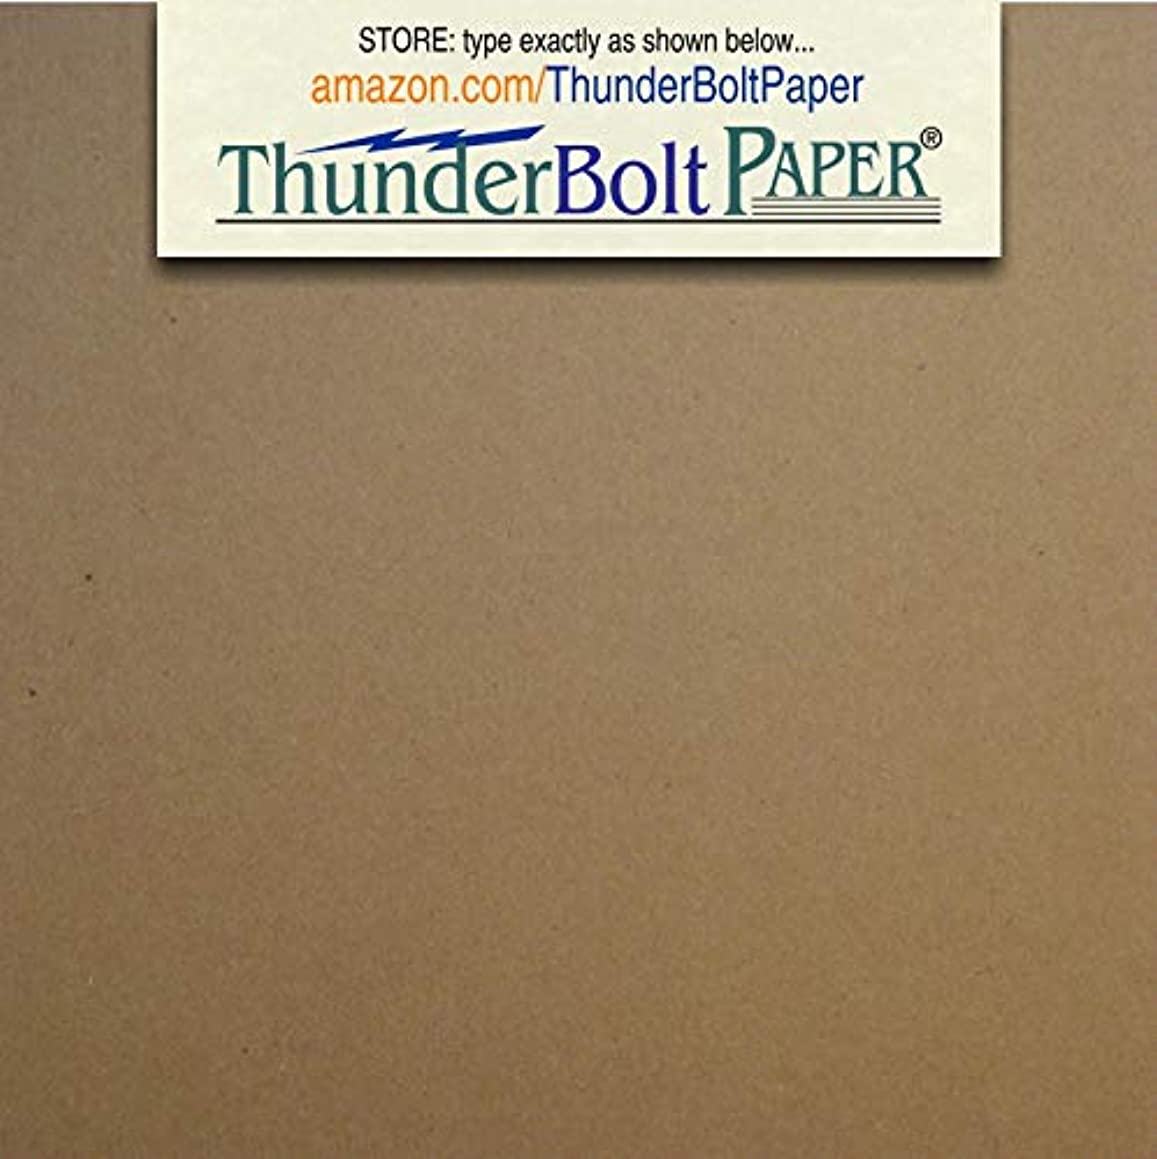 100 Sheets Chipboard 24pt (point) 4 X 4 Inches Light Weight Small Square Card Size .024 Caliper Thickness Cardboard Craft Packaging Brown Kraft Paper Board